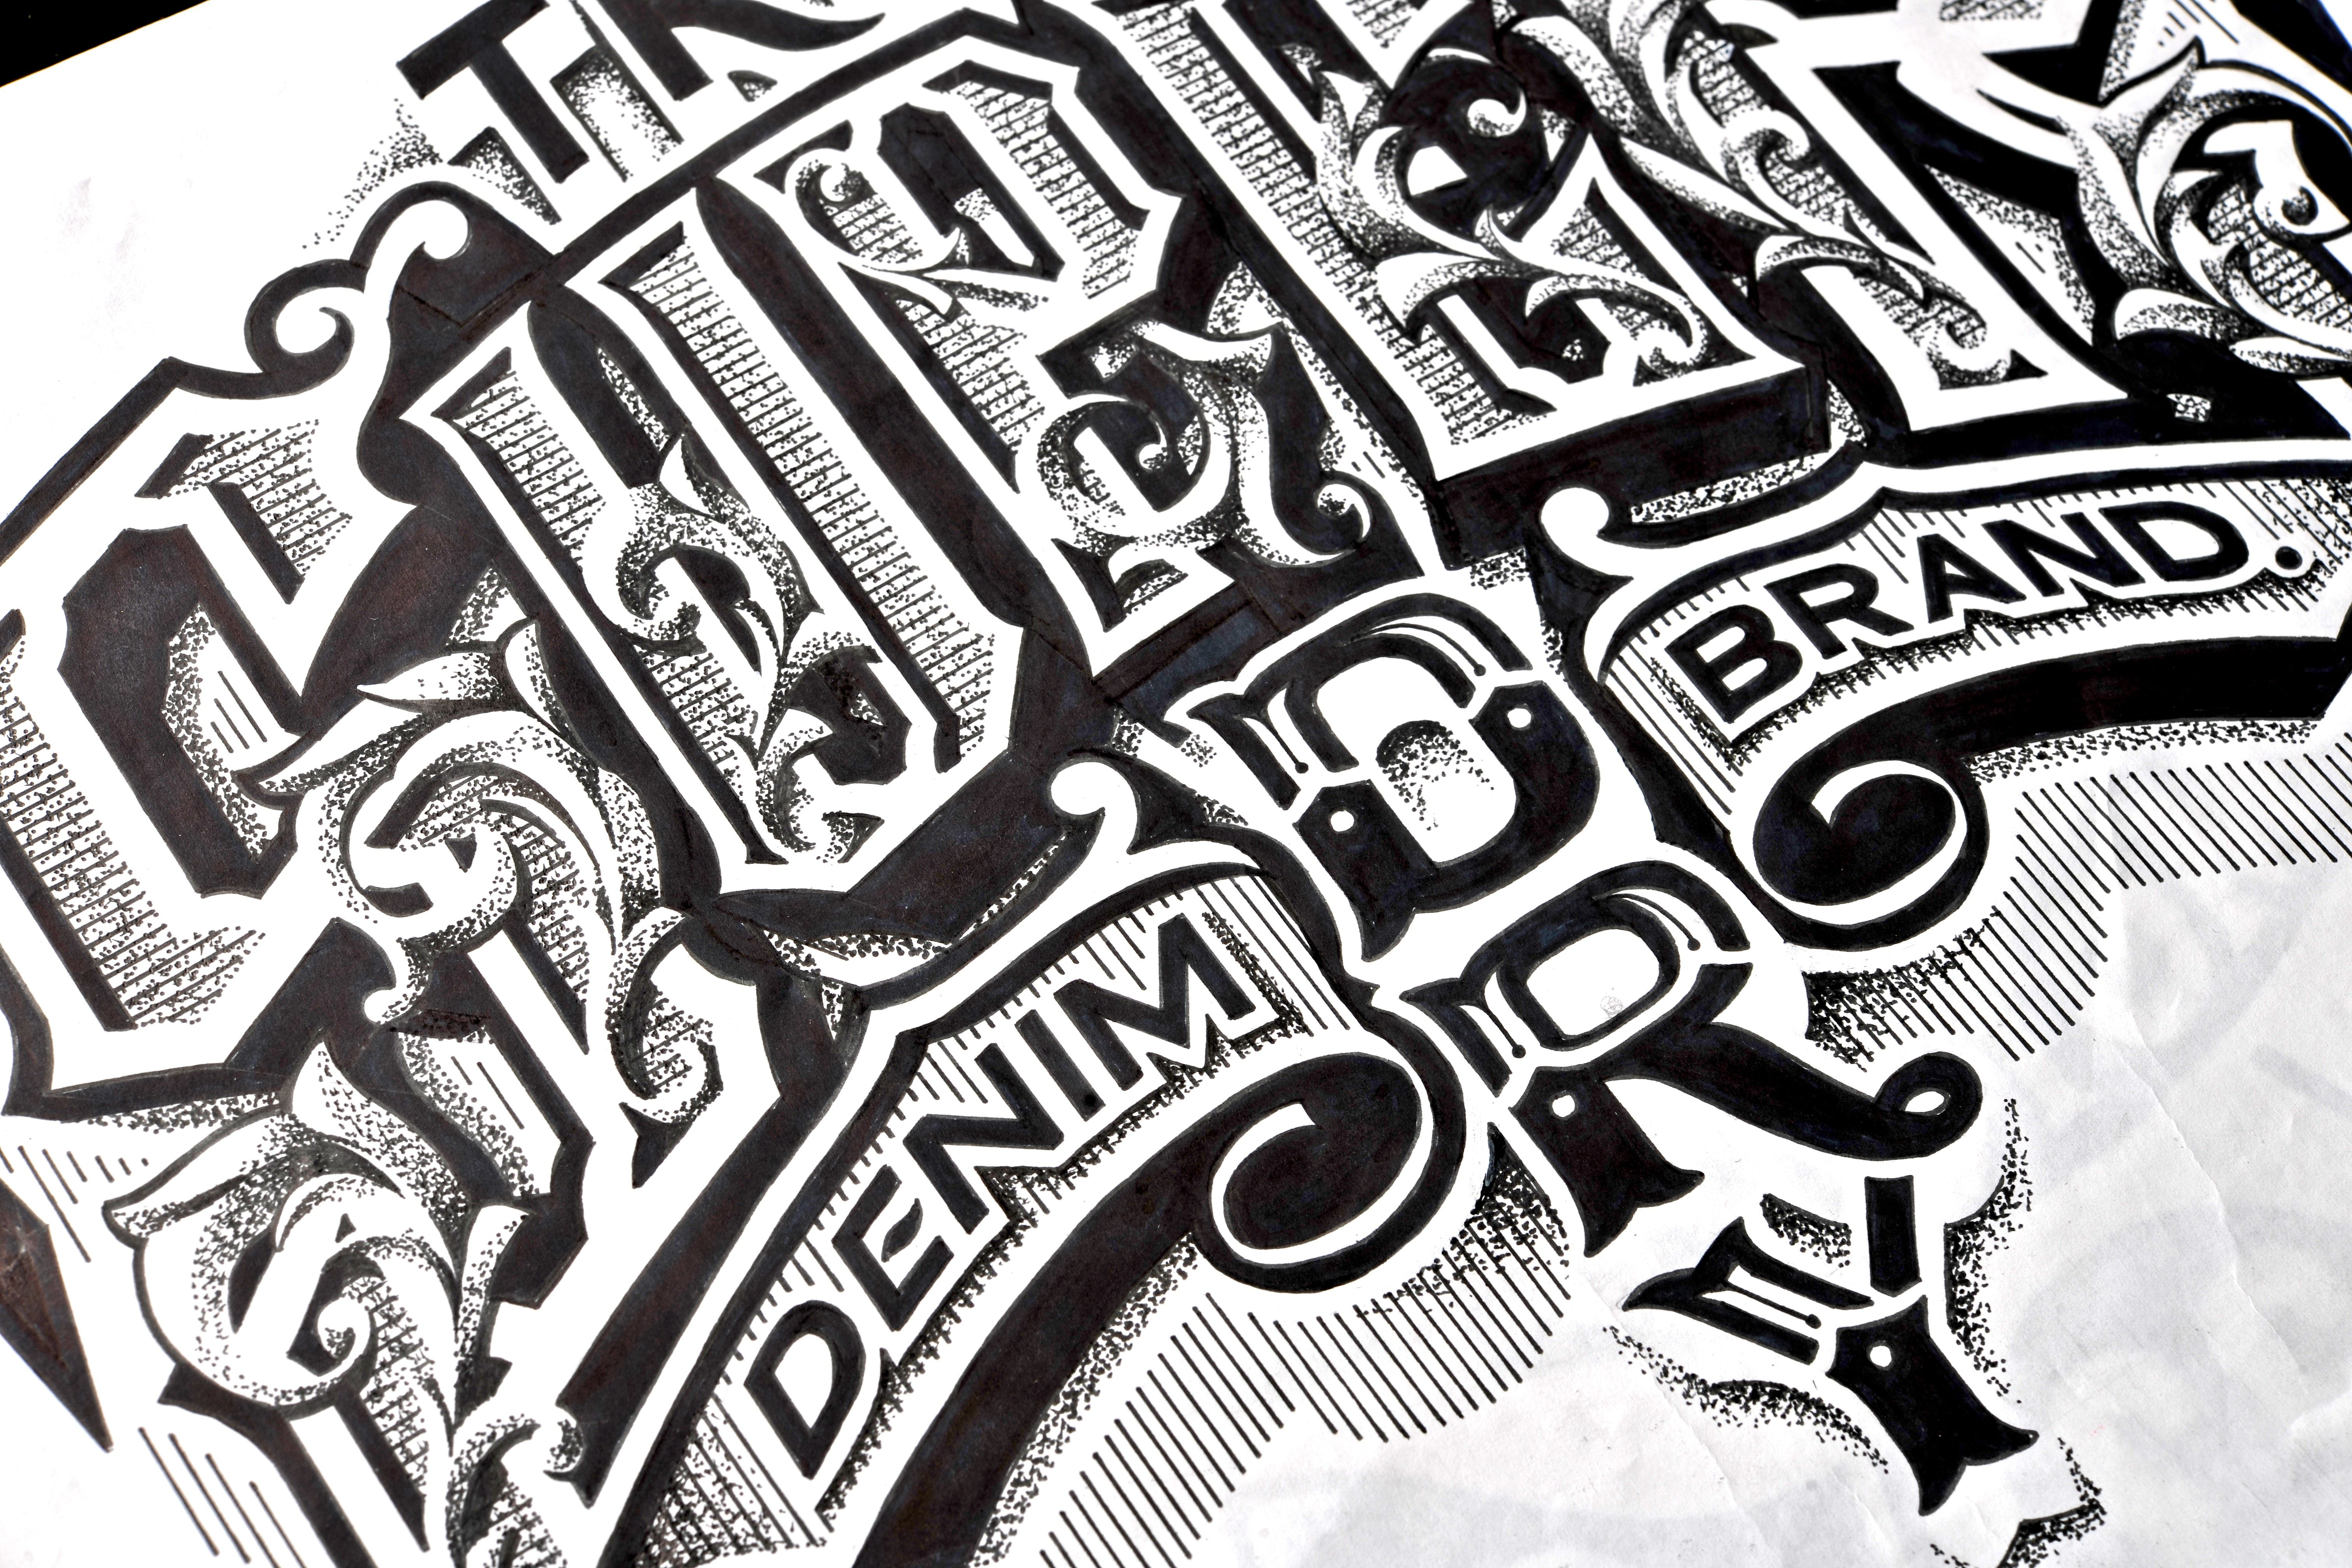 Look at the detail in this incredible handdrawn logo